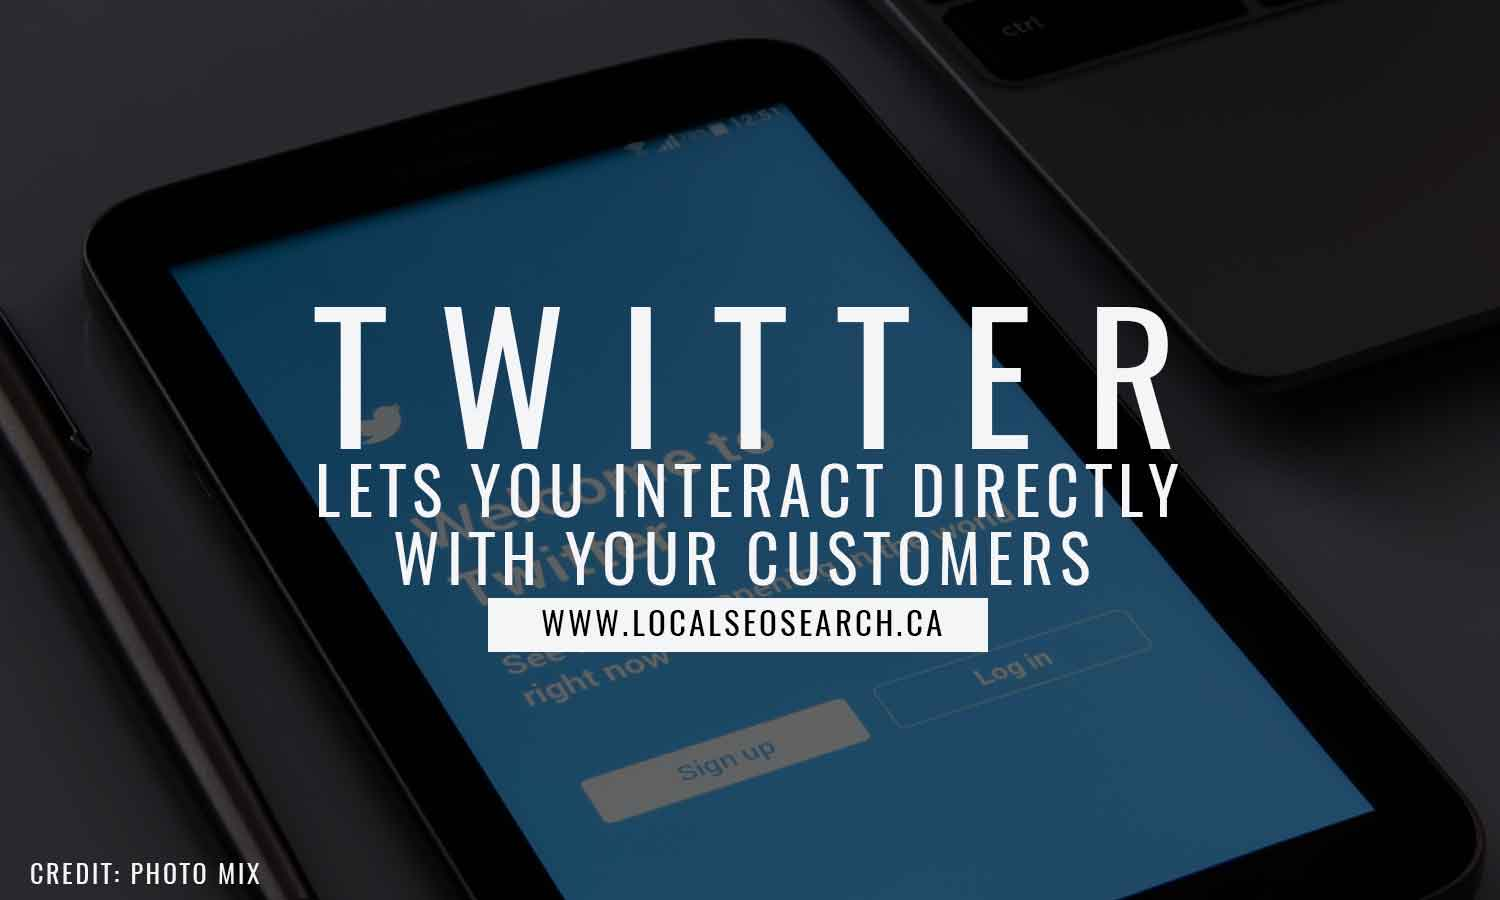 Twitter lets you interact directly with your customers